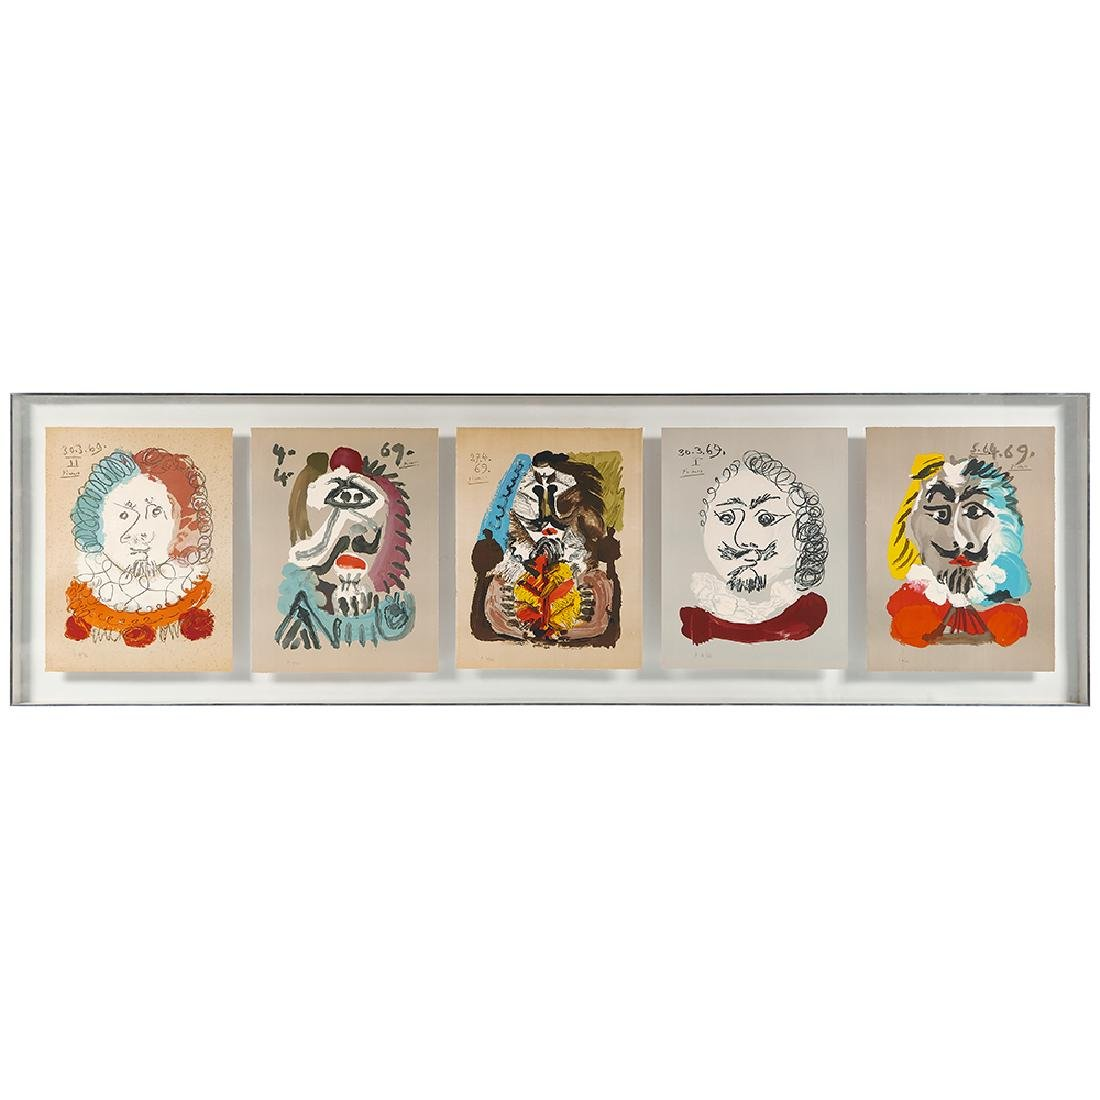 Pablo Picasso, Imaginary Portraits (a group of five)